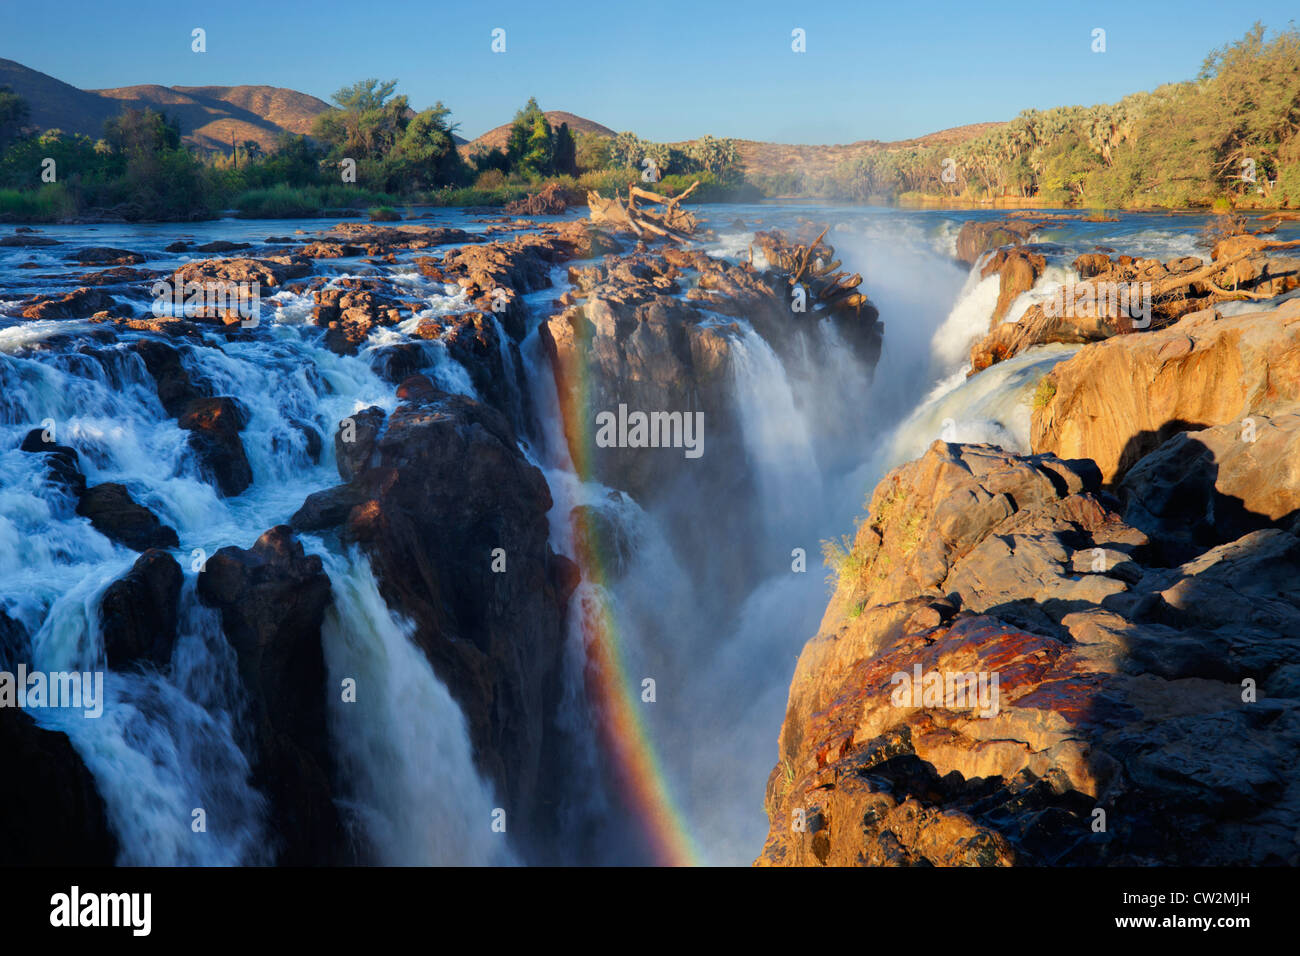 A Rainbow over the Epupa Falls on the Kunene River.Namibia - Stock Image